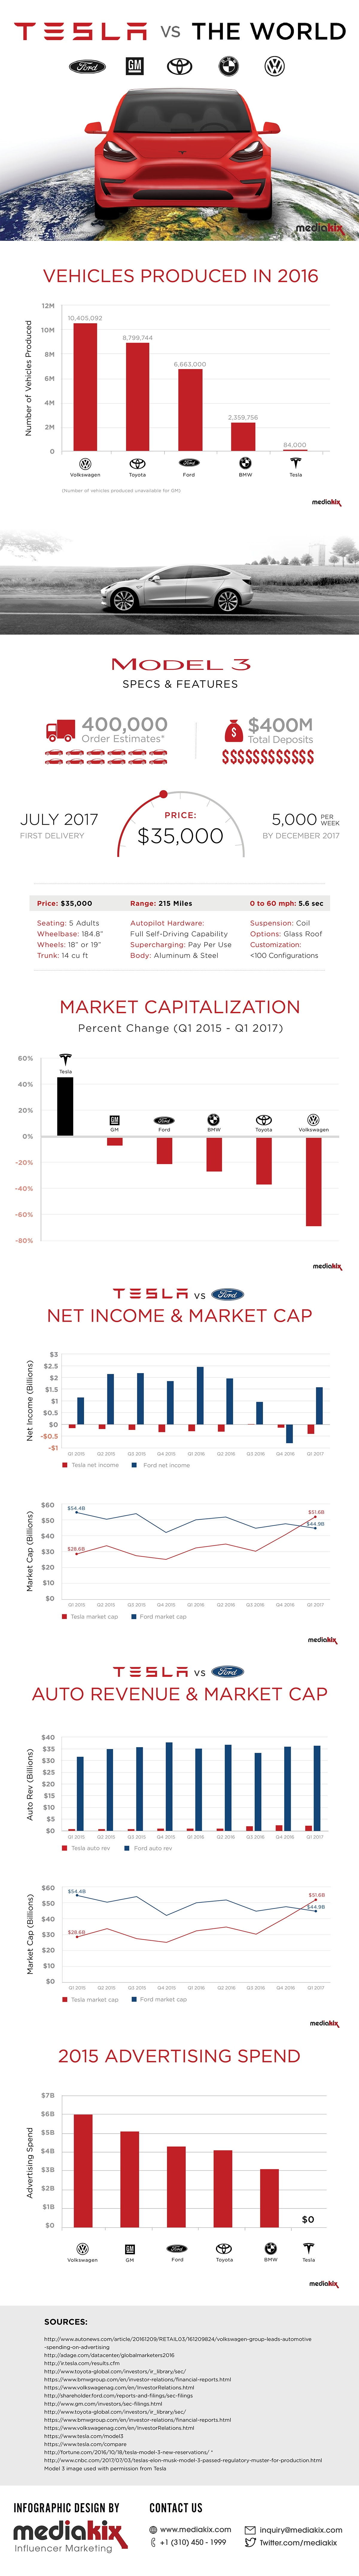 Tesla Vs. The World #infographic